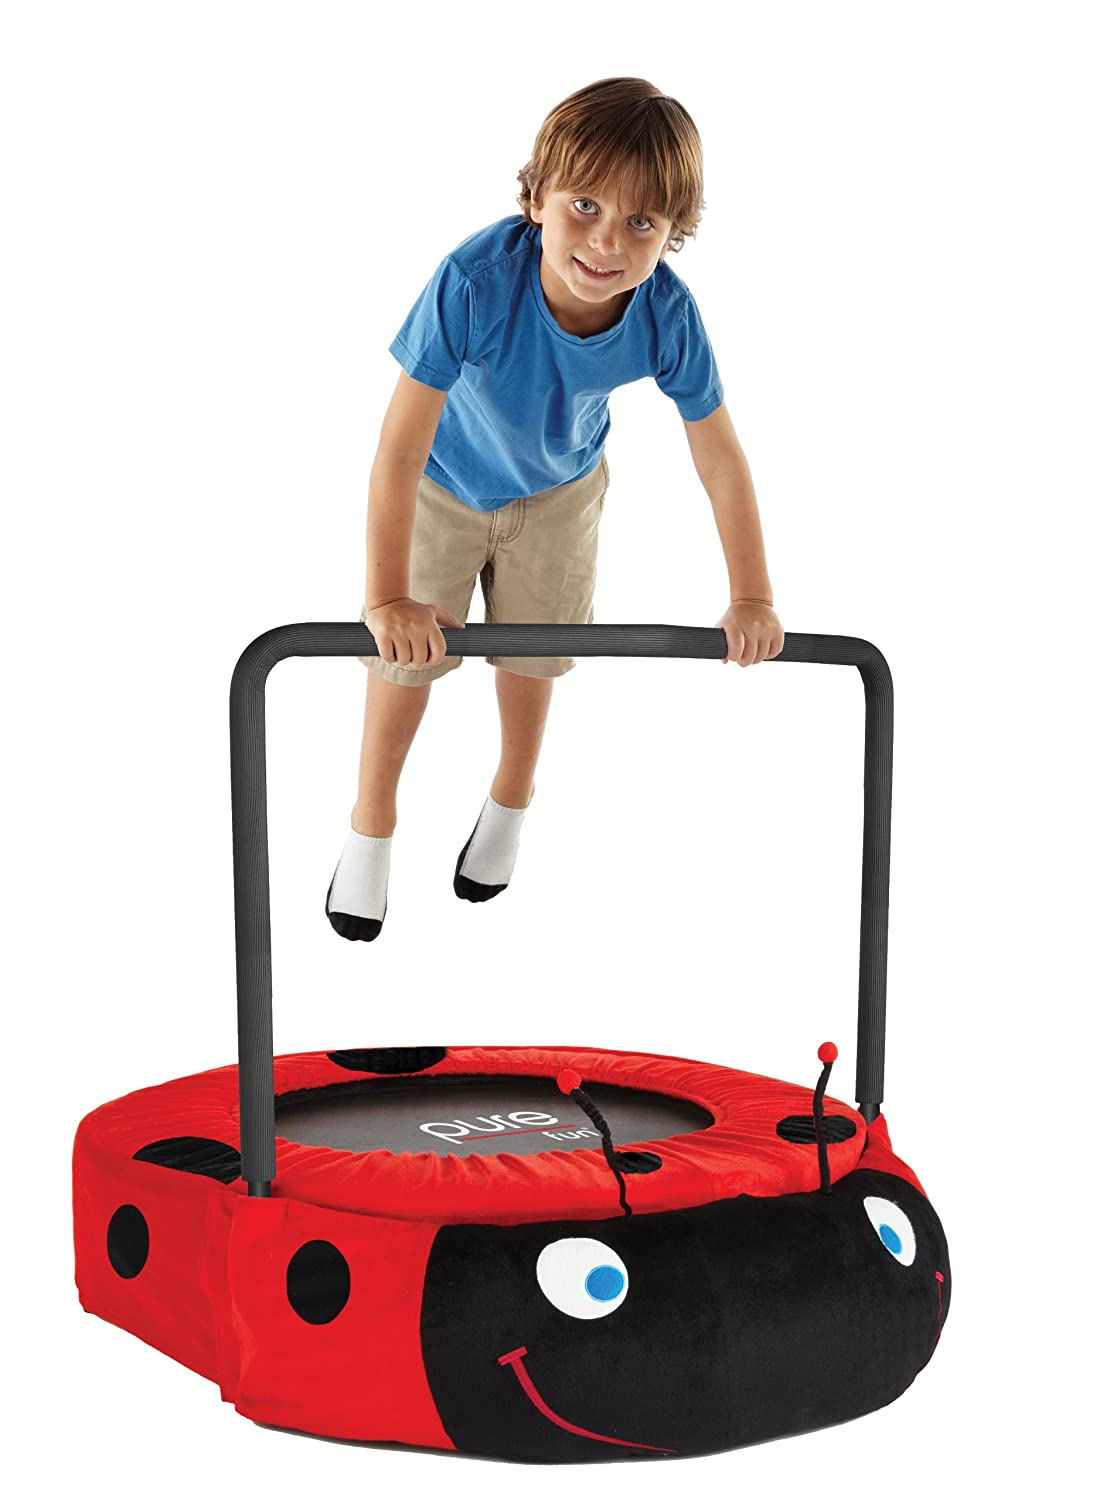 Popular Toys For 5 Year Olds : Best gifts and toys for year old boys favorite top